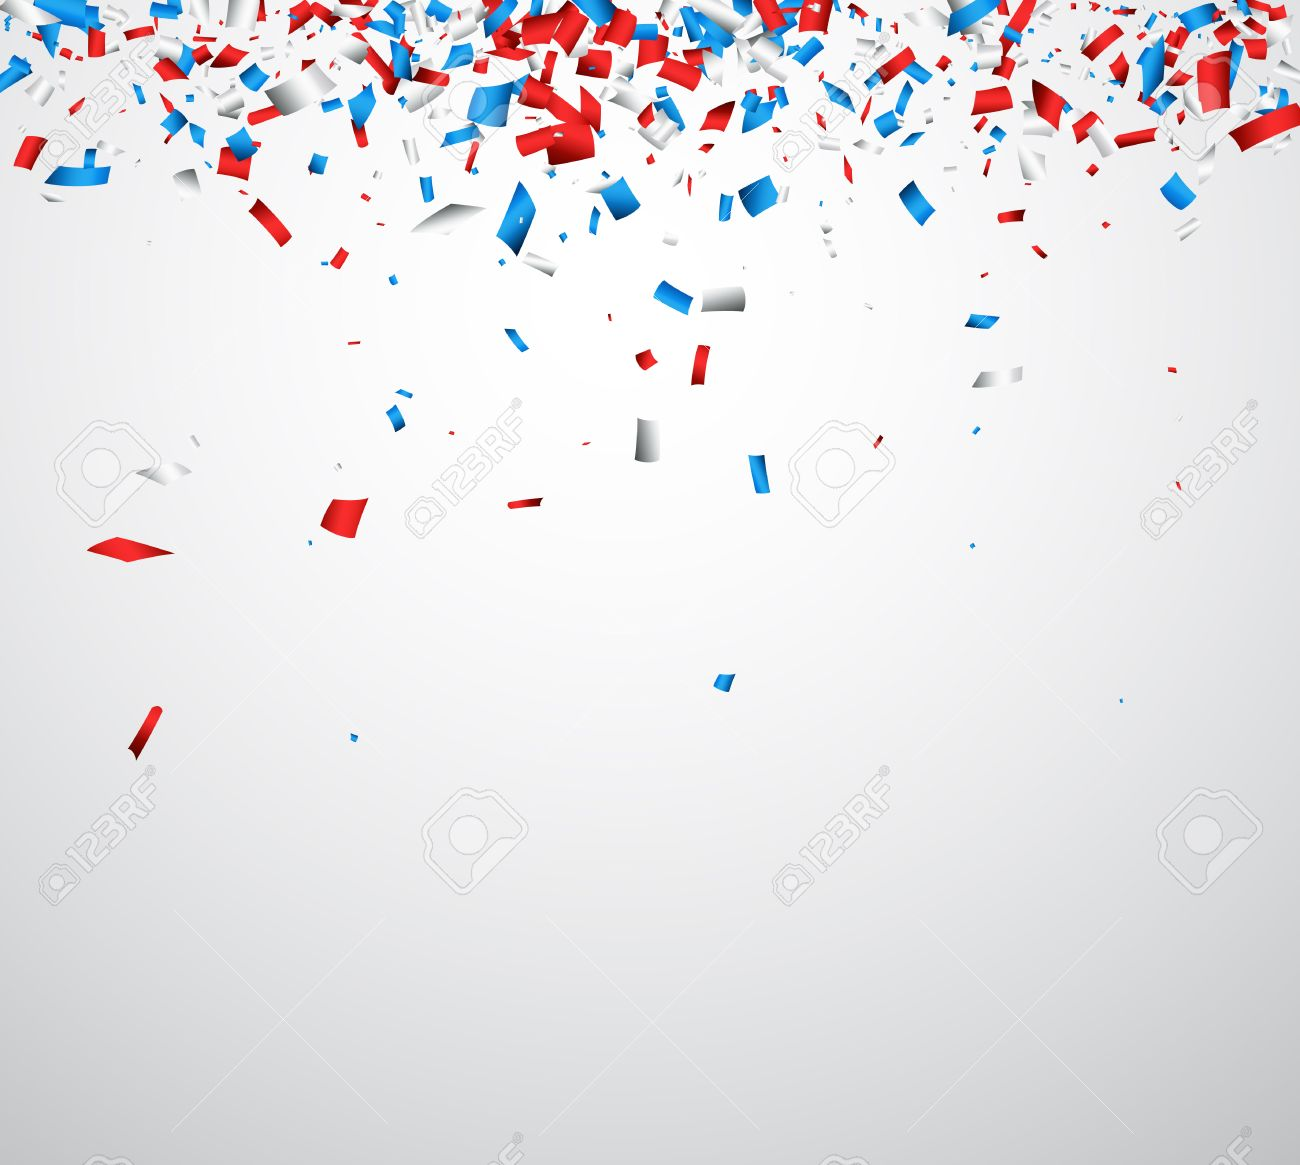 Background with red, white, blue confetti. Vector illustration. - 59167602